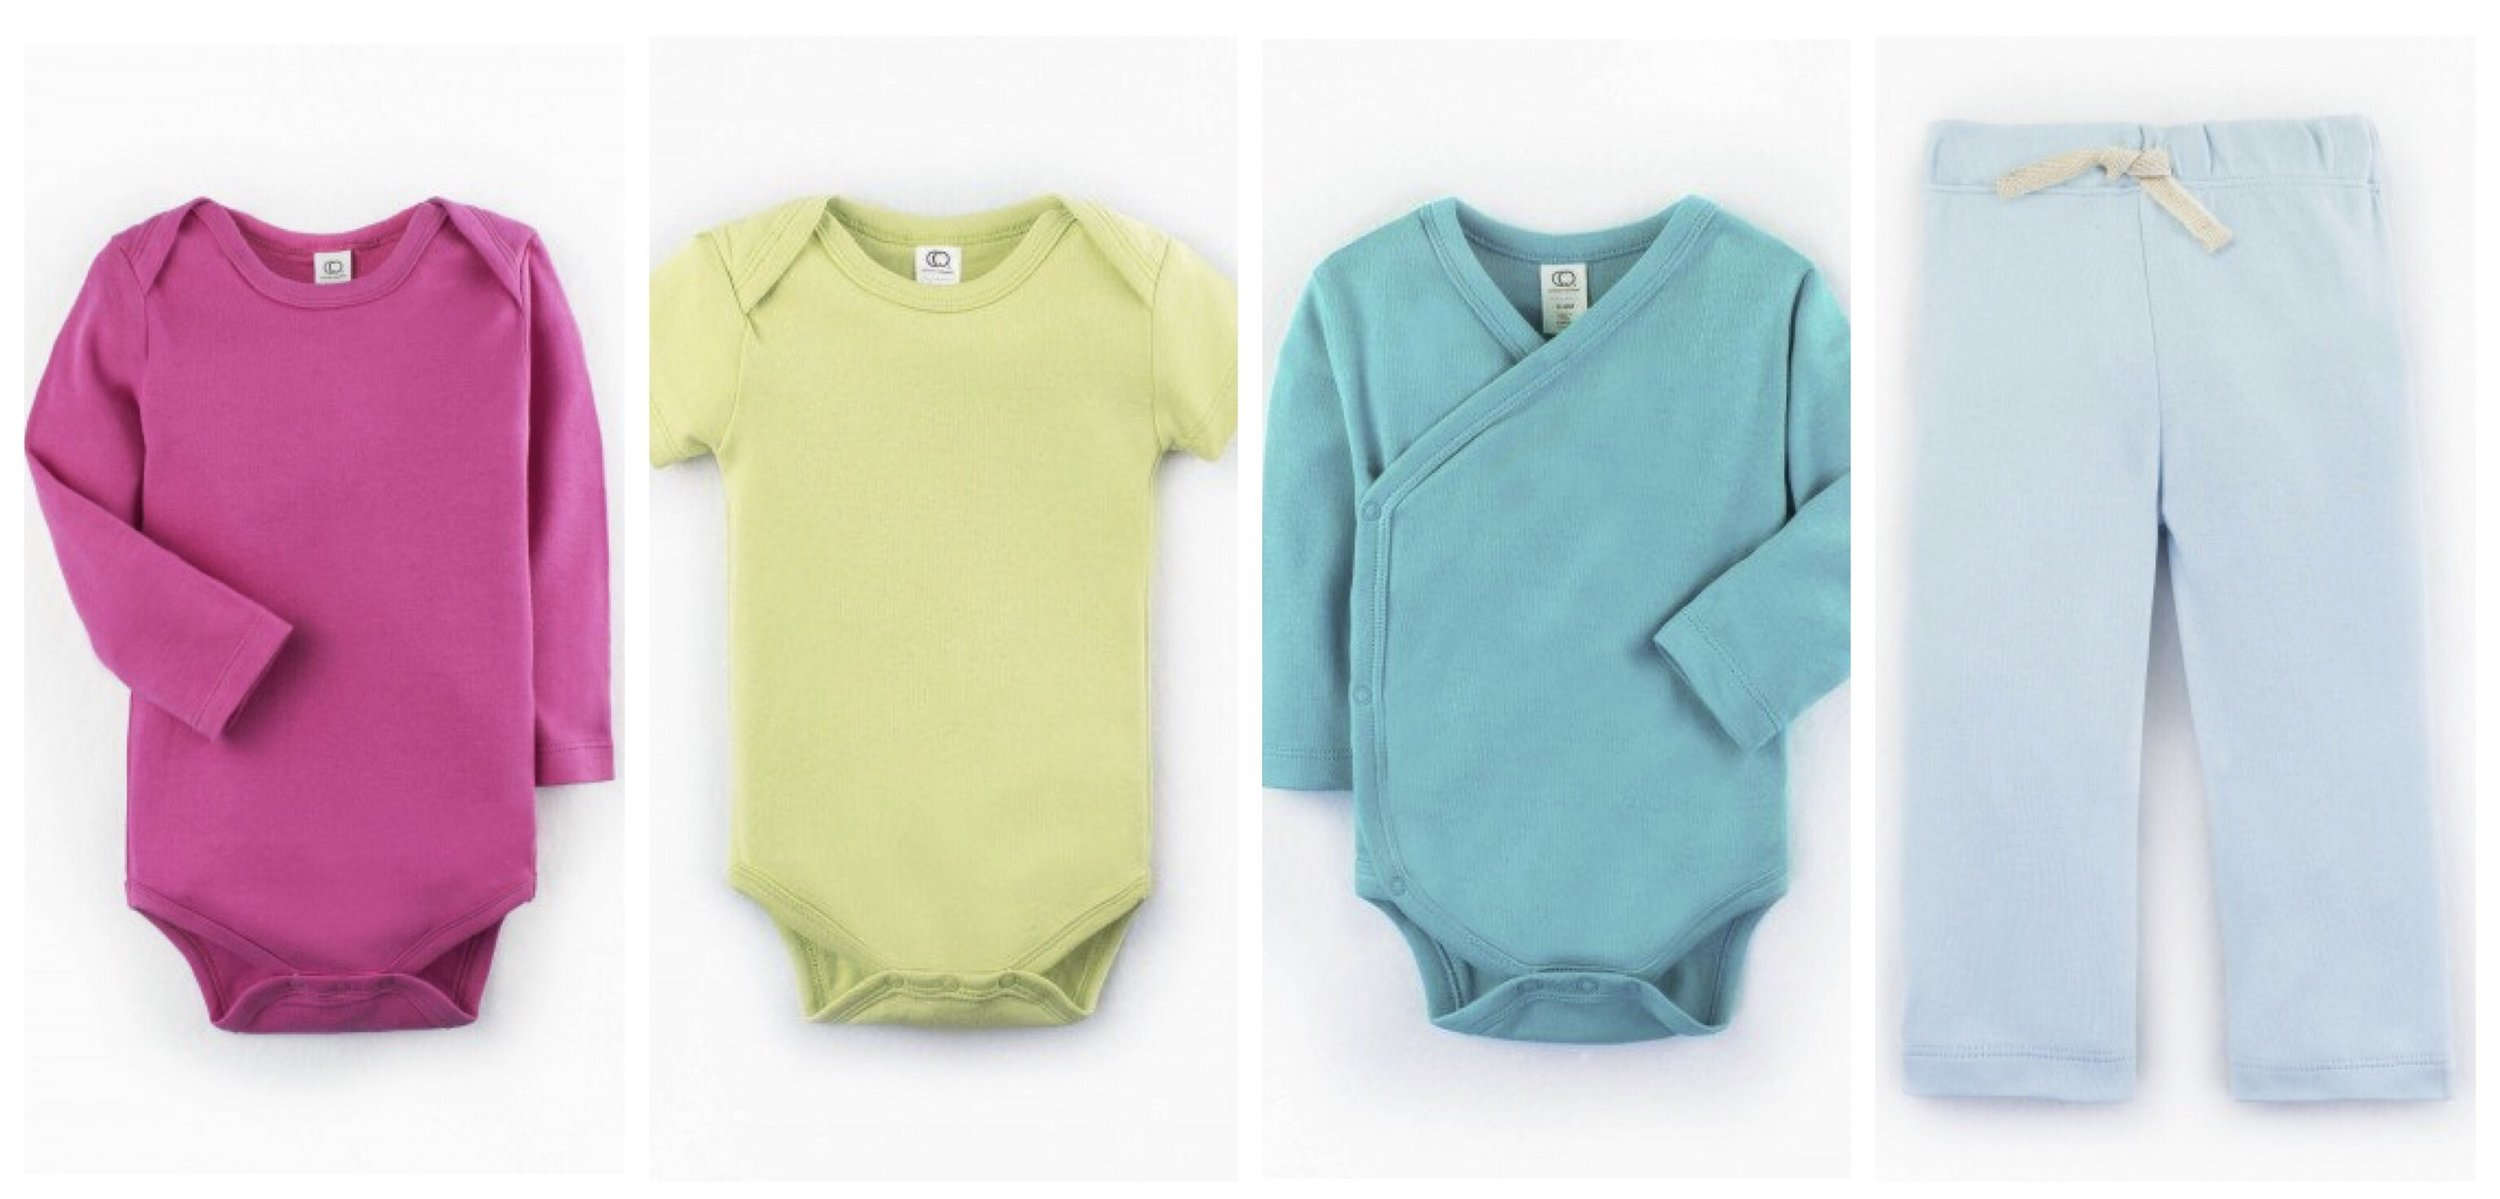 Colored Organics Baby Clothes